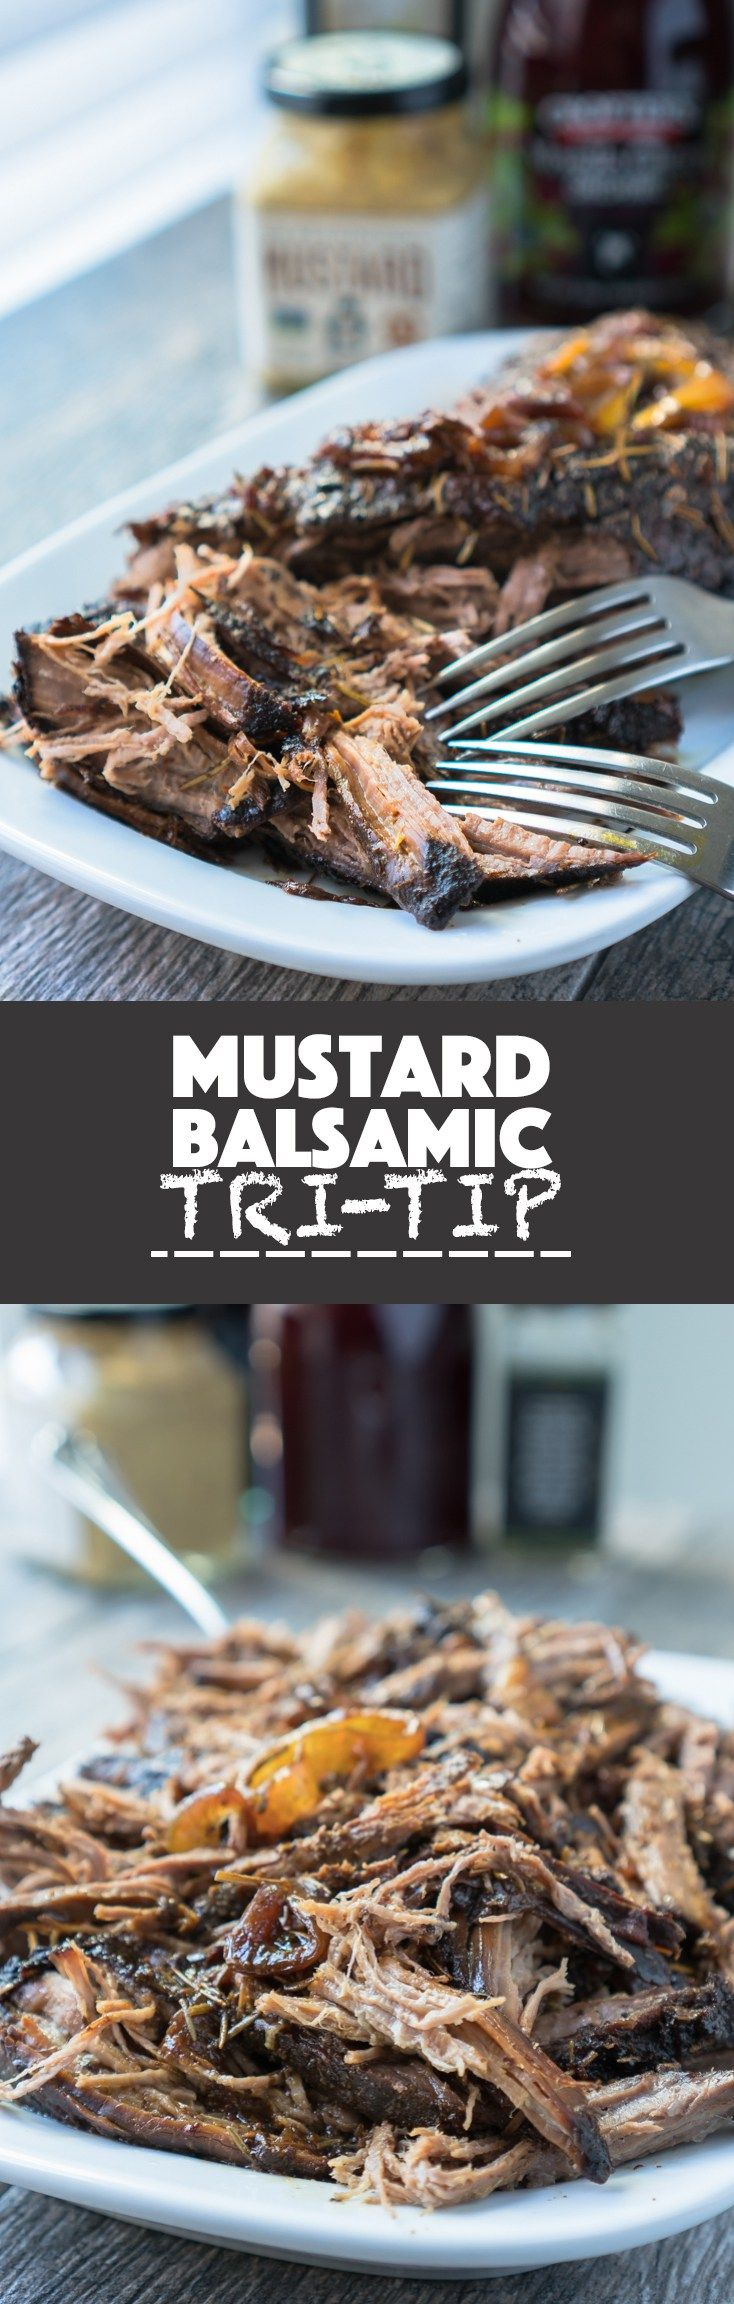 Mustard Balsamic Tri-Tip – Healthy recipe for slow-cooker Mustard Balsamic Tri-Tip! Uses balsamic vinegar, spicy brown mustard, cherry jam, olive oil, rosemary, shallots, and garlic. We love that this recipe is gluten-free & only takes a few minutes to prep! ♥ | freeyourfork.com